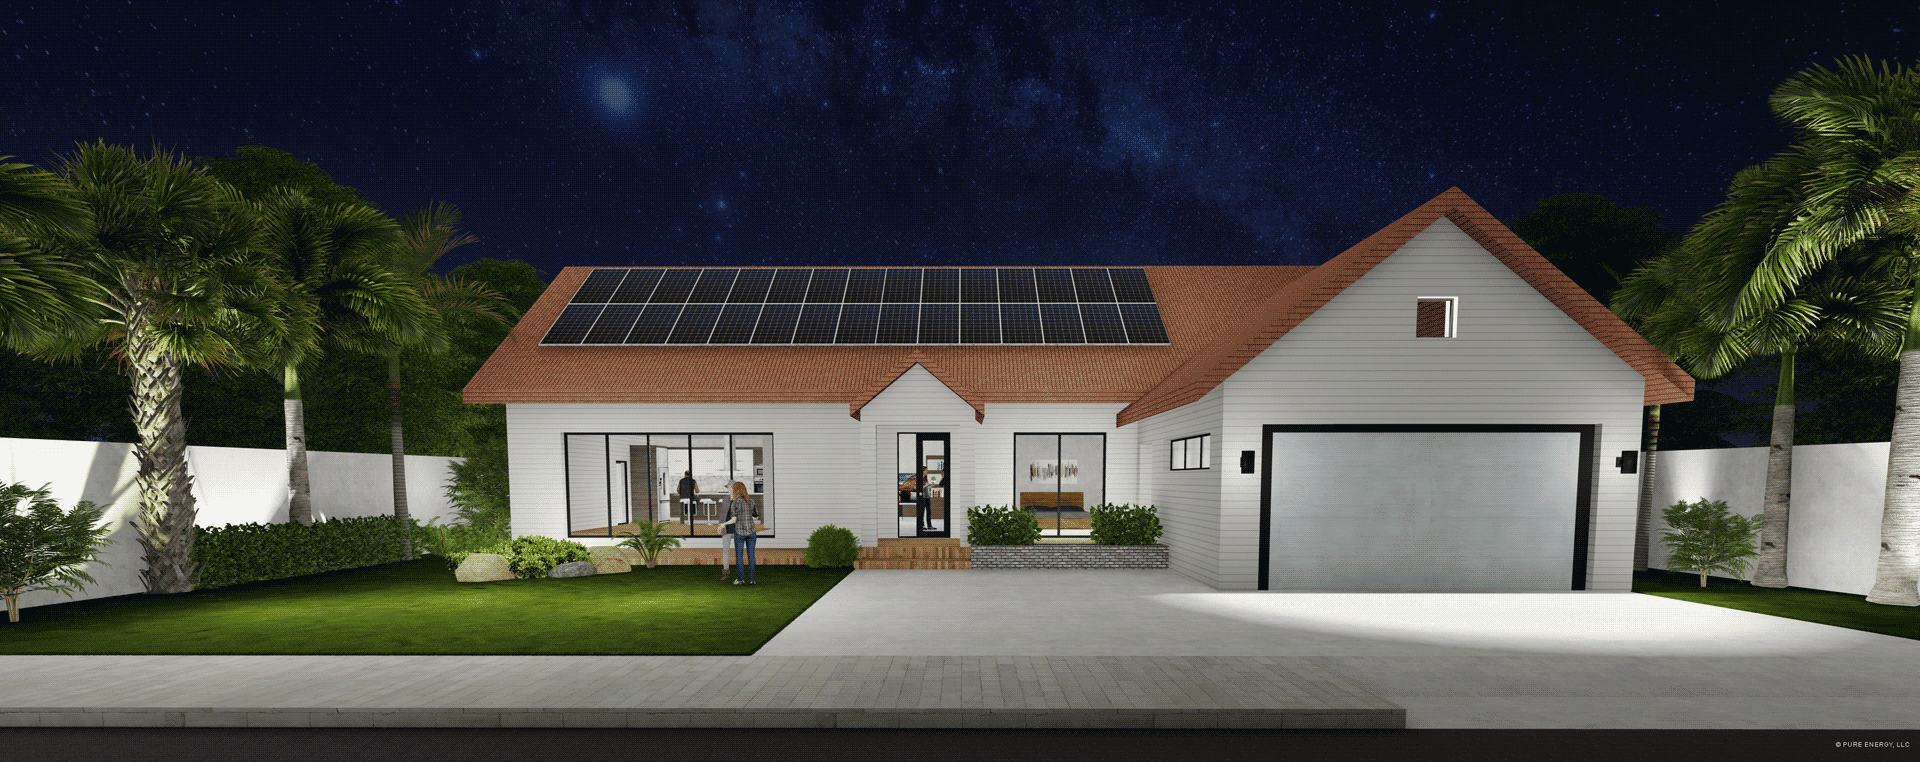 pe-solar-modern-house-with-solar-panels-and-people-outside-talking-desktop